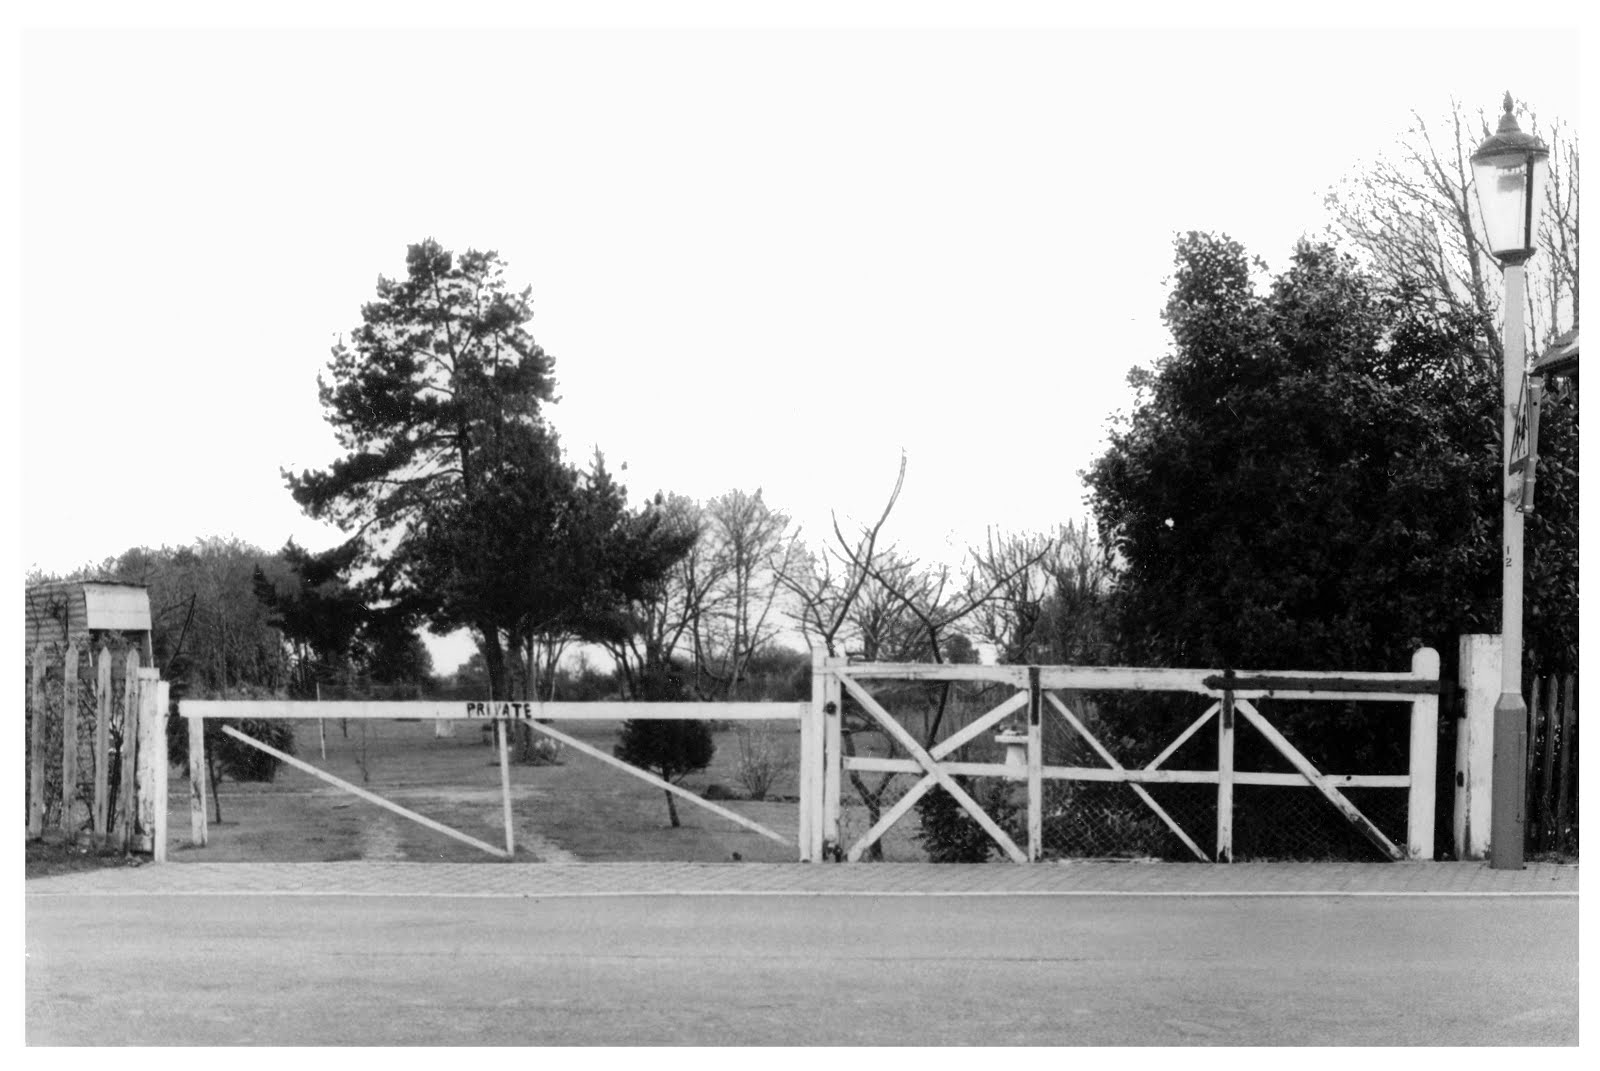 Crossing gates at The Crescent